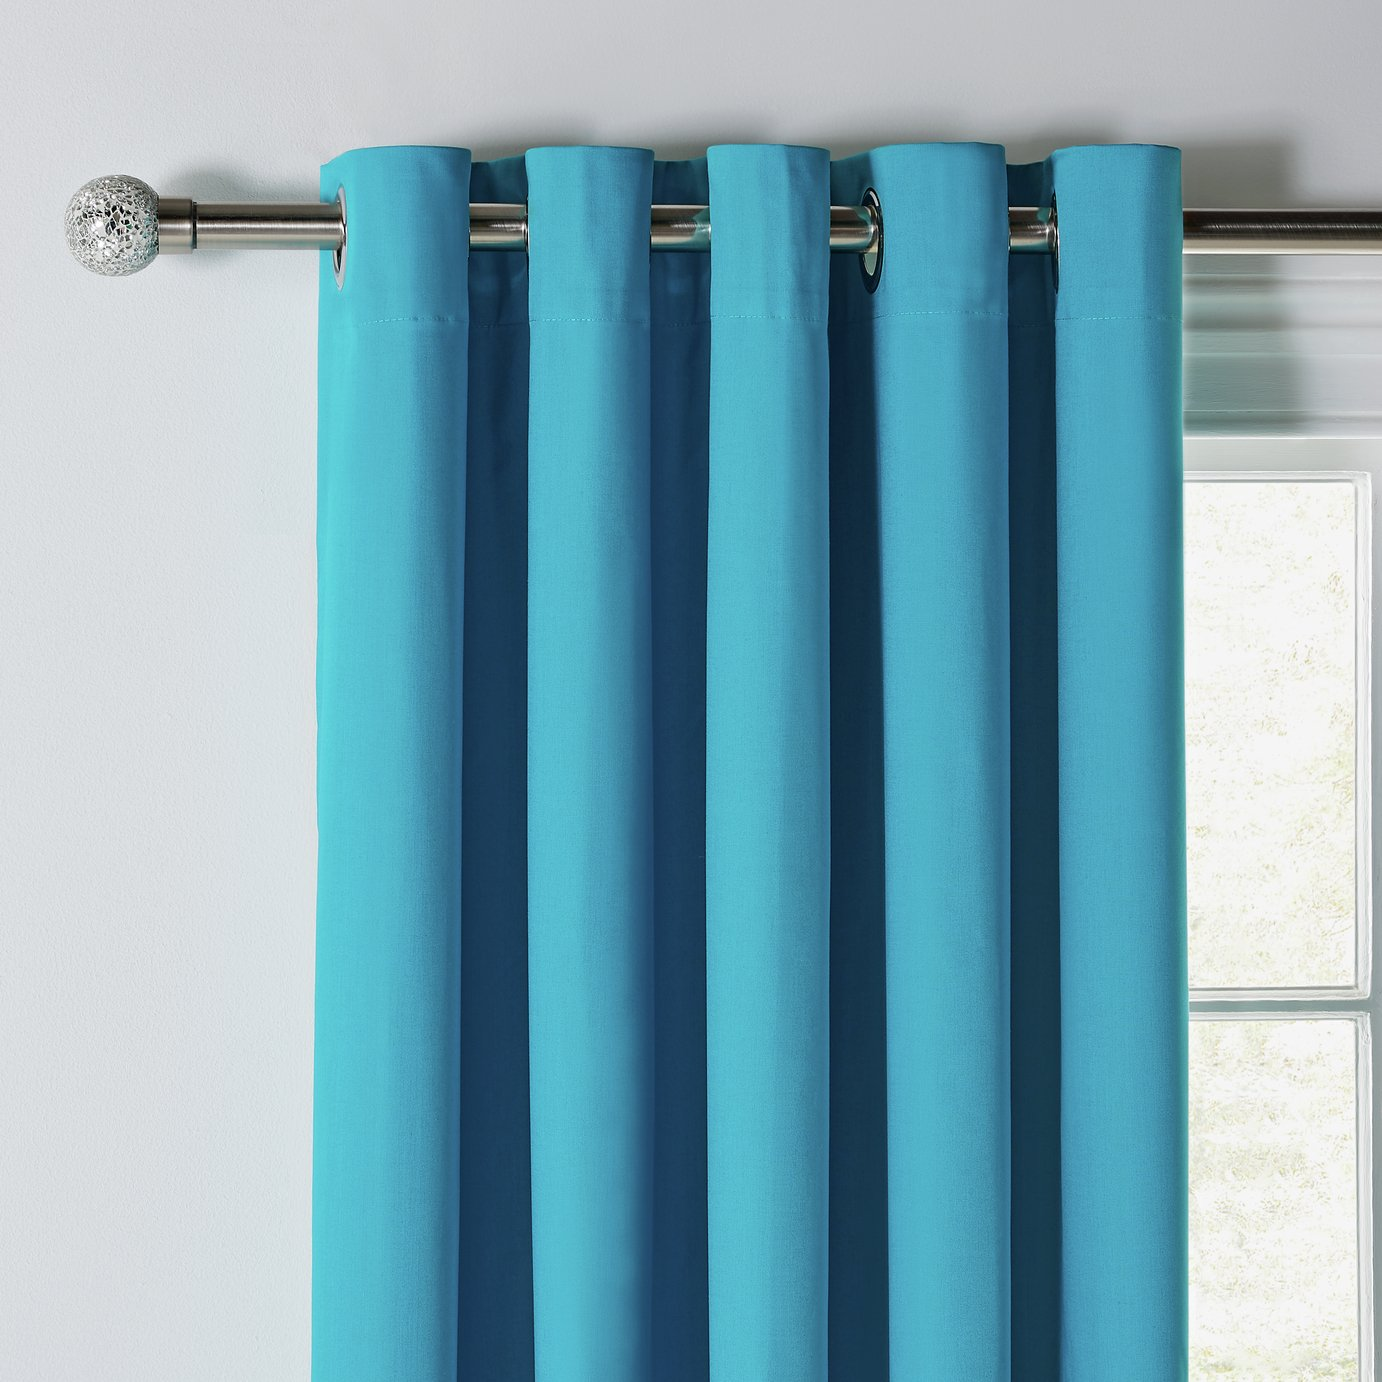 Argos Home Blackout Thermal Curtains - 117x137cm - Teal